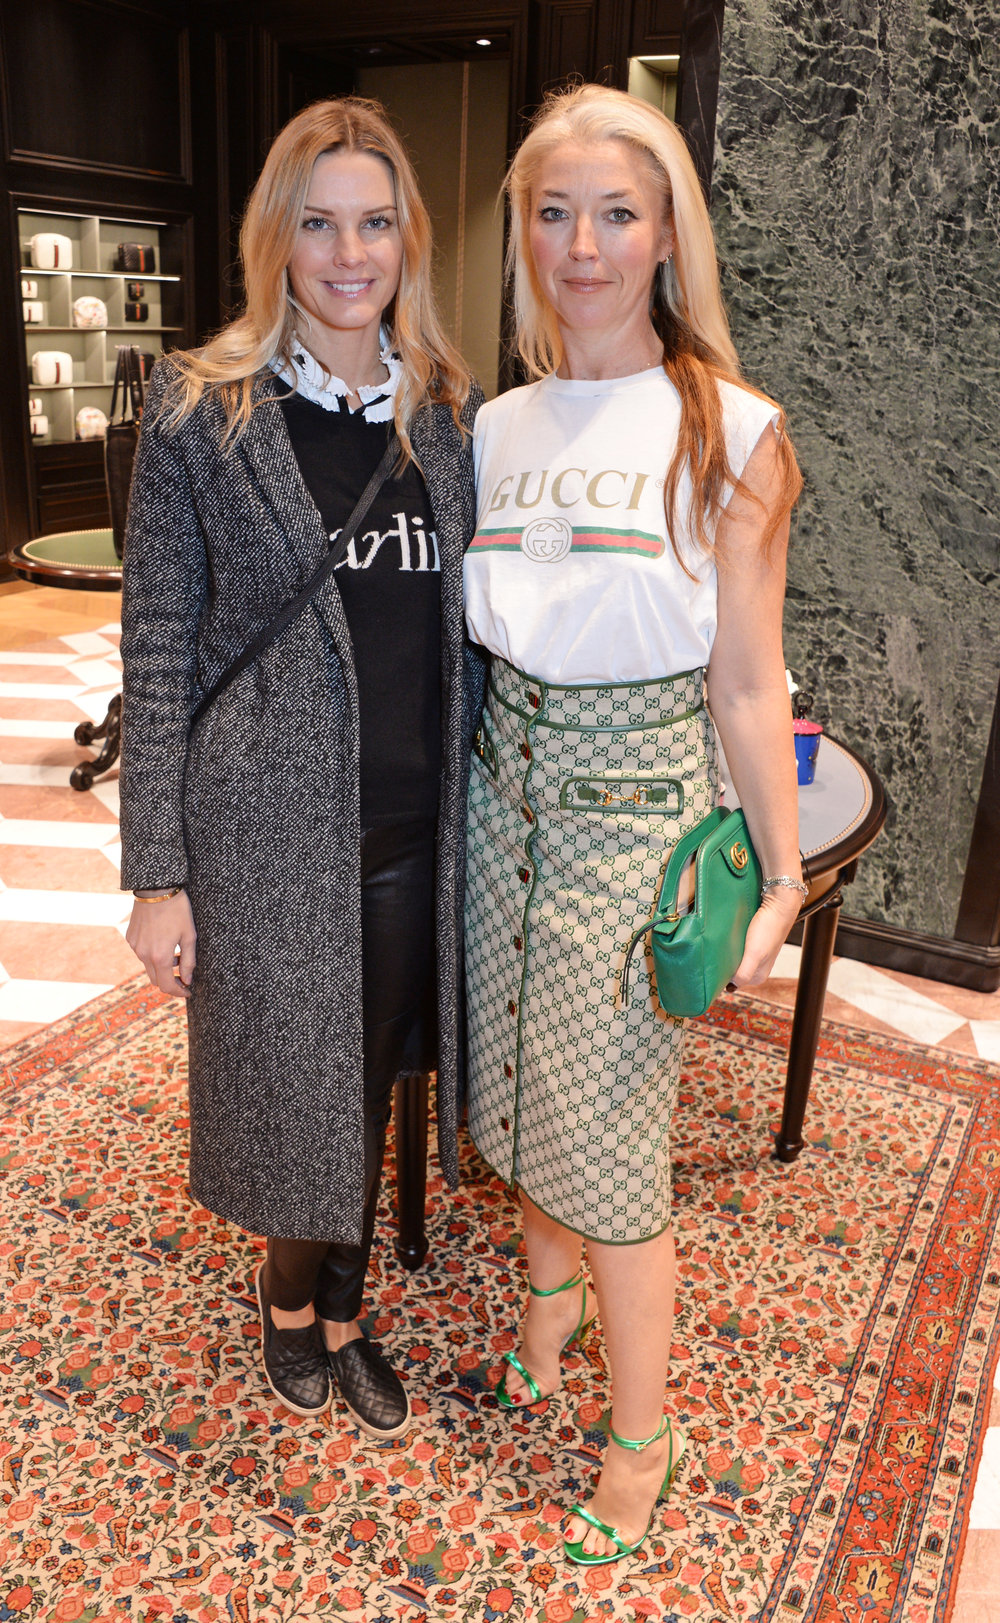 5th Anniversary: Exclusive shopping breakfast at Gucci — - On 5th December, The Lady Garden Foundation celebrated its 5th Anniversary with an exclusive breakfast at Gucci's flagship store on Sloane Street. Celebrating The Lady Garden Foundation milestone in style, it also marked the exciting announcement of an upcoming collaboration between the charity and fashion house in the new year. Hosted by The Lady Garden Foundation Co-founders Tamara Beckwith Veroni, Jenny Halpern Prince, Astrid Harbord, Josephine Daniel and Chloe Delevingne, the well-attended event kicked off at 9am, with the more eager shoppers queuing around the block before the doors even opened. The Lady Garden Foundation supporters were out in force, with Esther Coren, Jamie Winstone, Mary Charteris, Storm Keating, Thea Green, Millie Mackintosh and Tina Hobley enjoying the delicious breakfast canapes and juices, as well as all the incredible craftsmanship that Gucci has to offer. The event raised an amazing £15,000 for the charity.